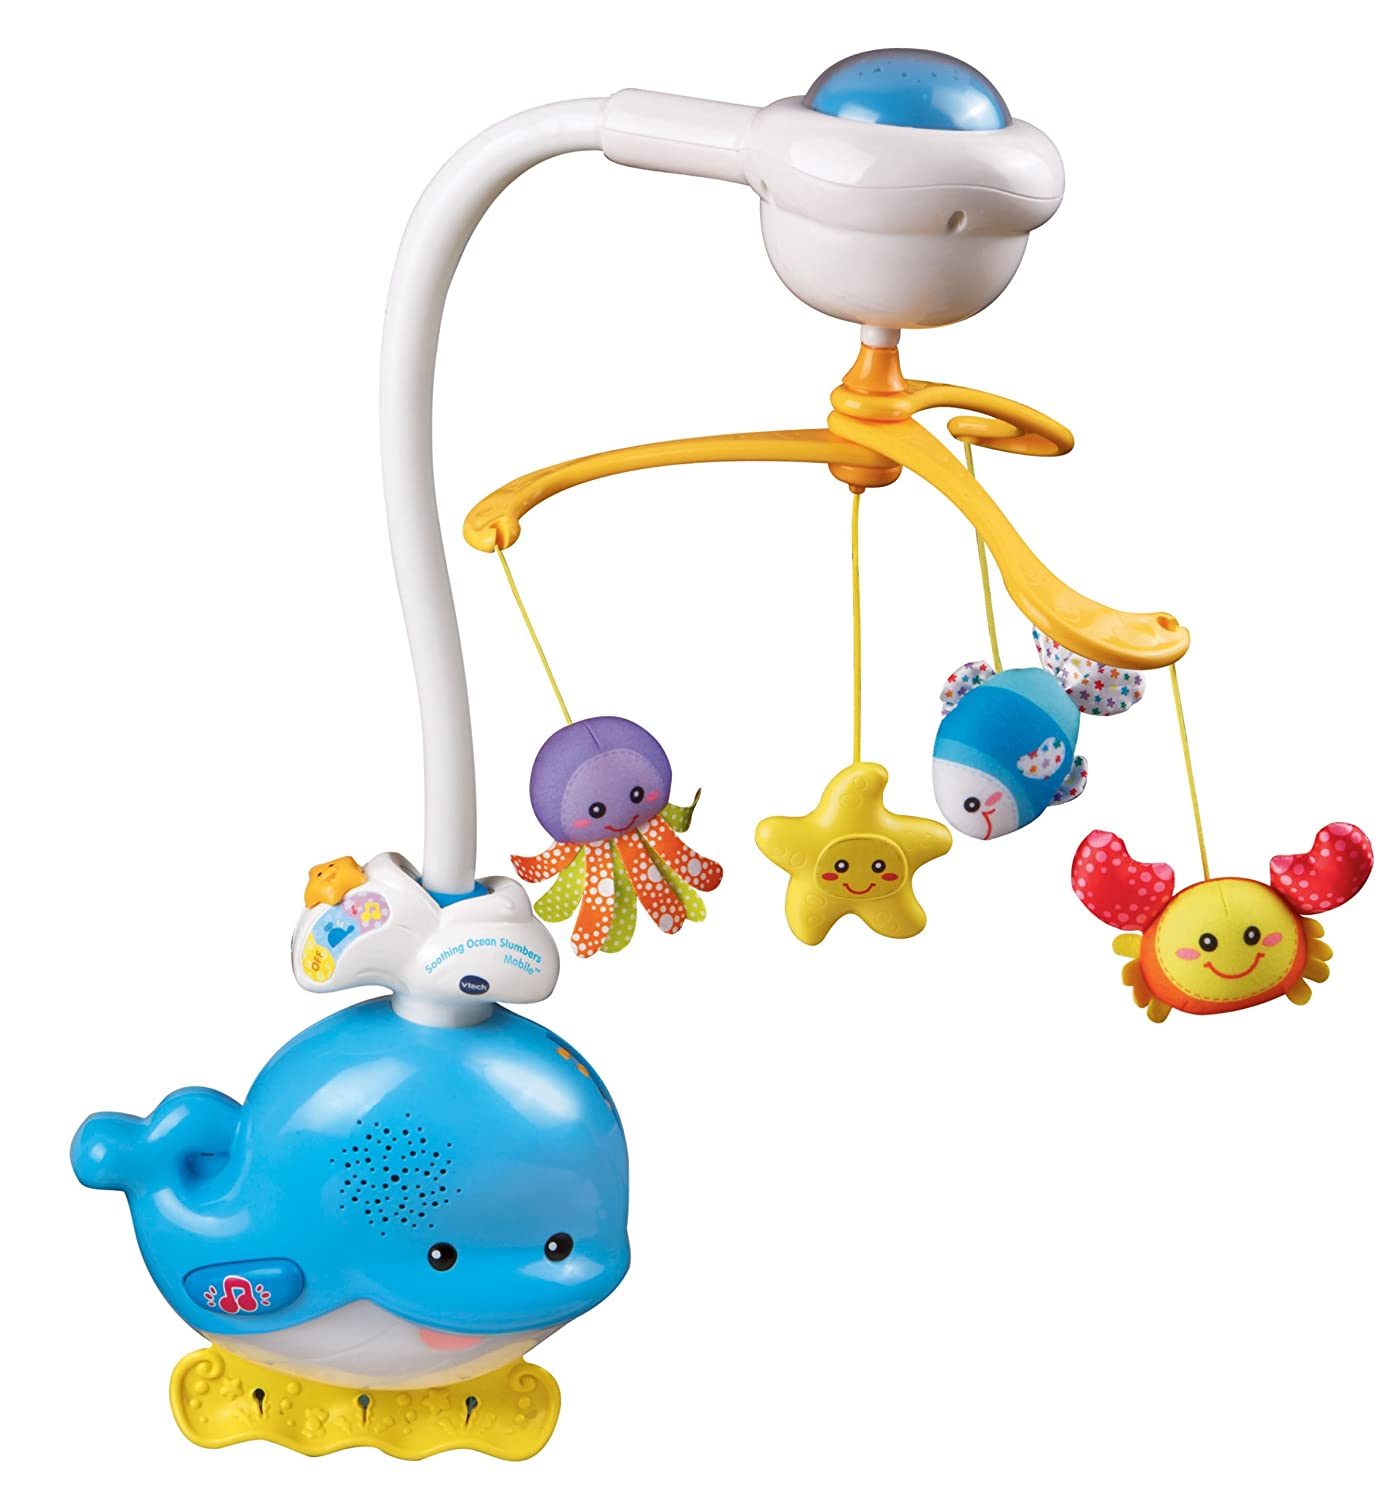 Best Musical Toys For Babies : The best musical baby toys and gifts for your